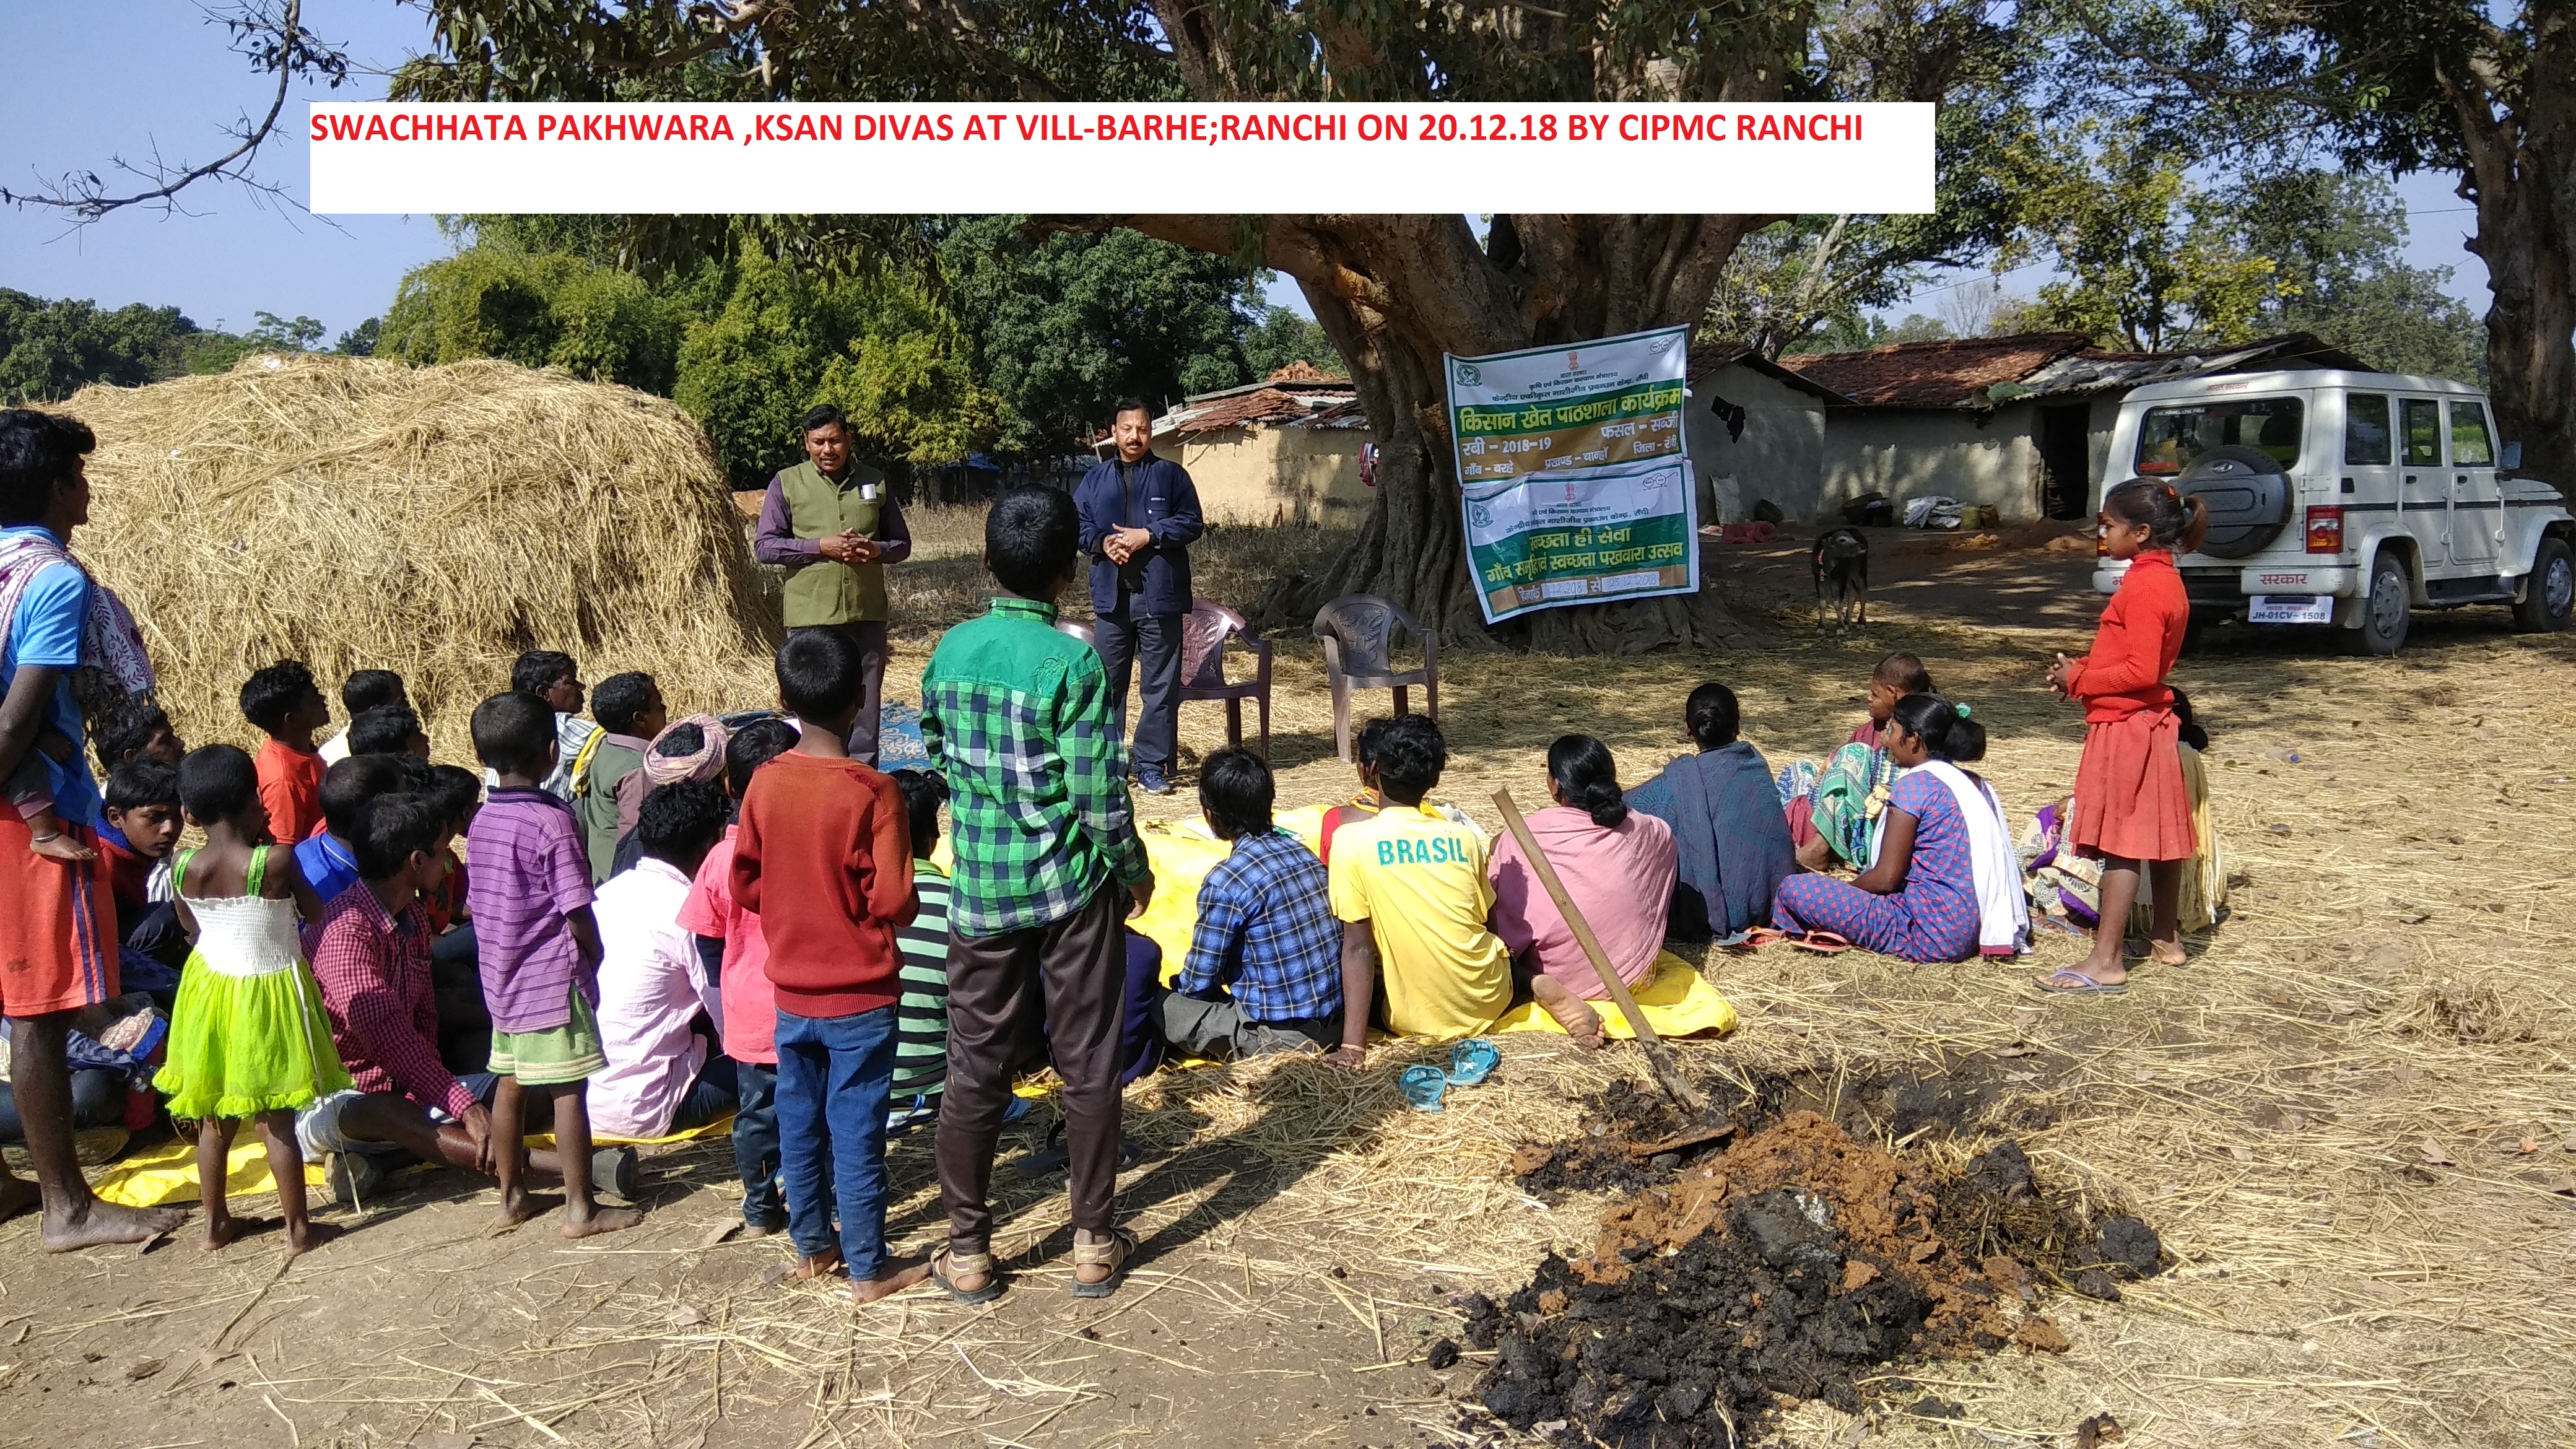 Kishan Divas,Disposal of Insecticide container at FFS-BARHE,Ranchi